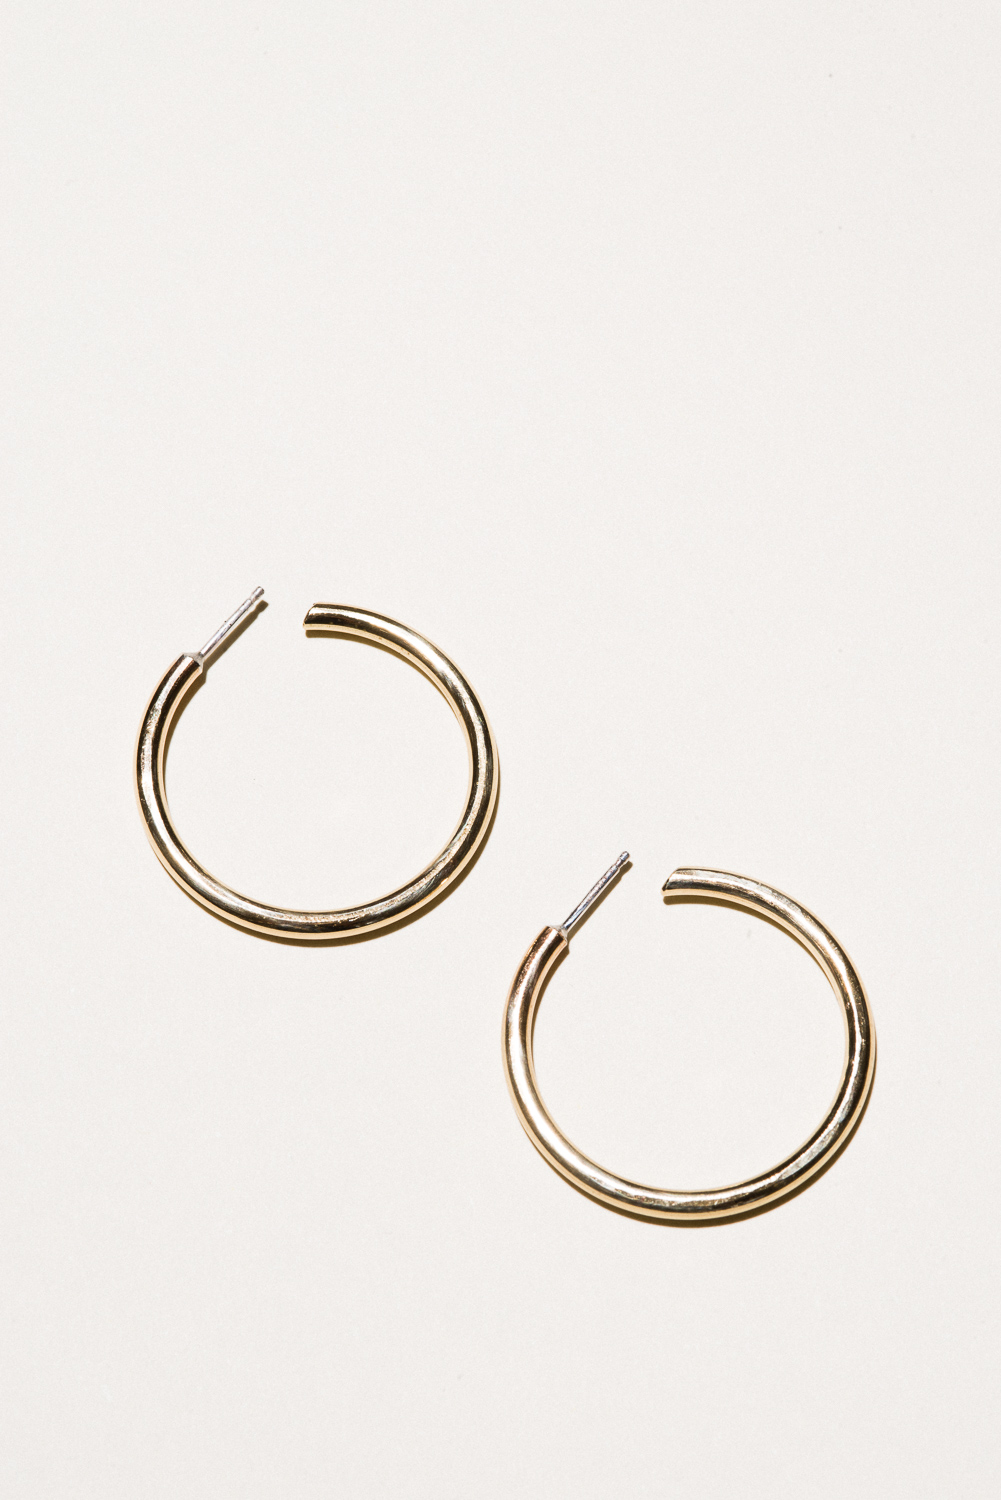 Large Brass Classic Hoops - 1.3 in diameterJewelers Brass, Lacquer FinishHand Smithed$60